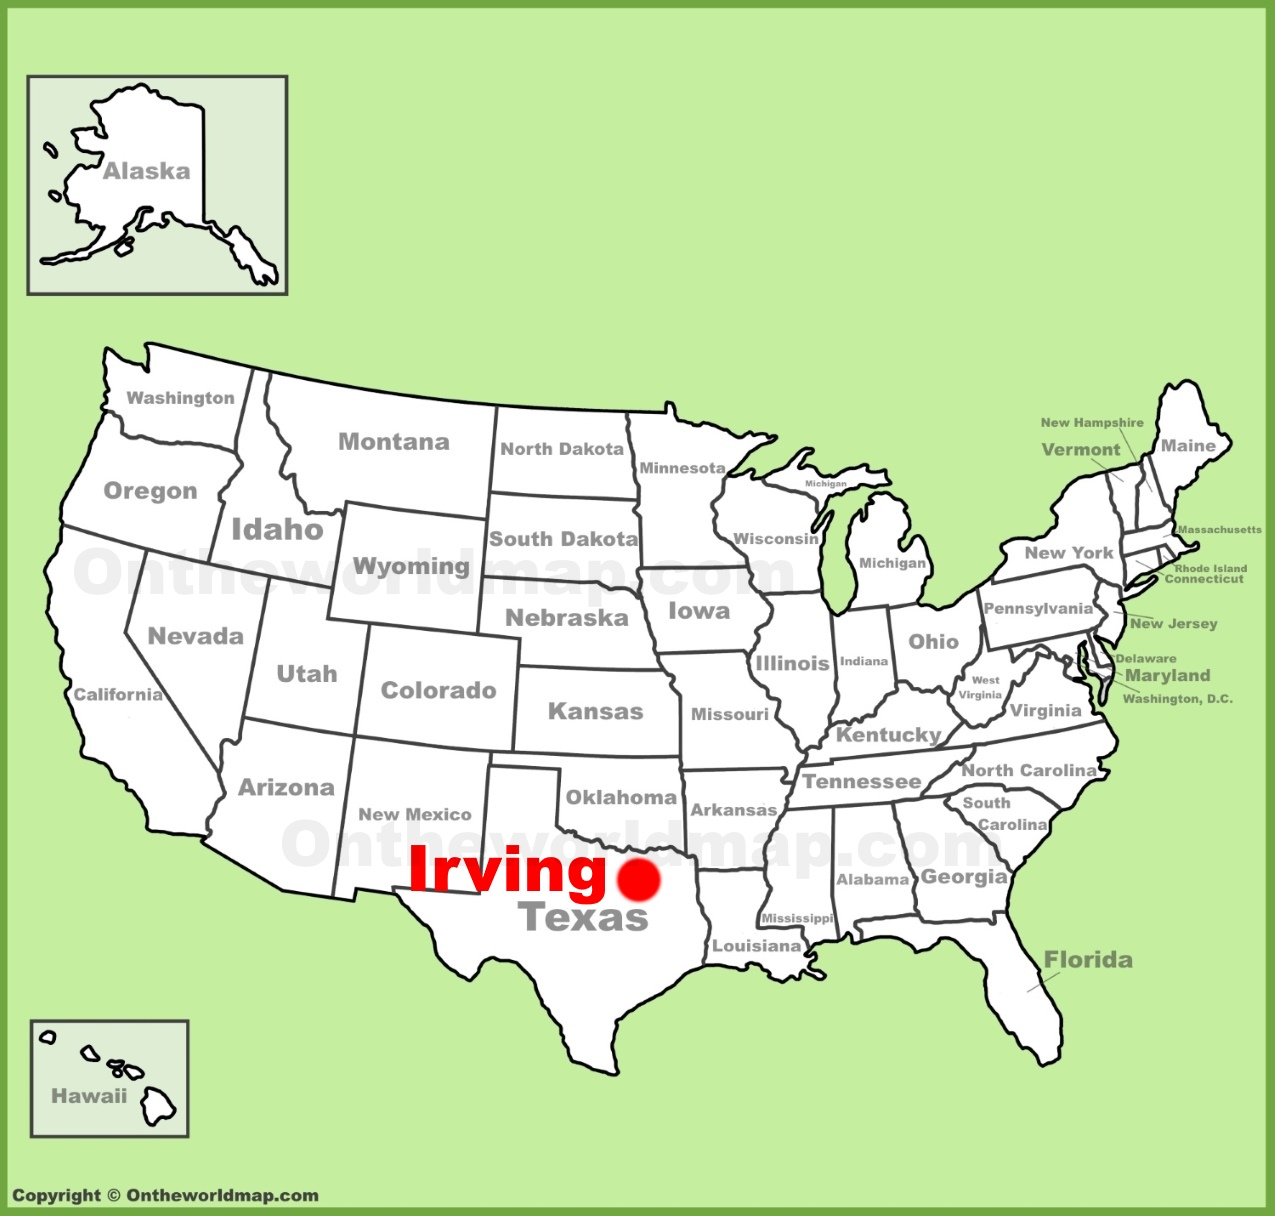 Irving location on the US Map